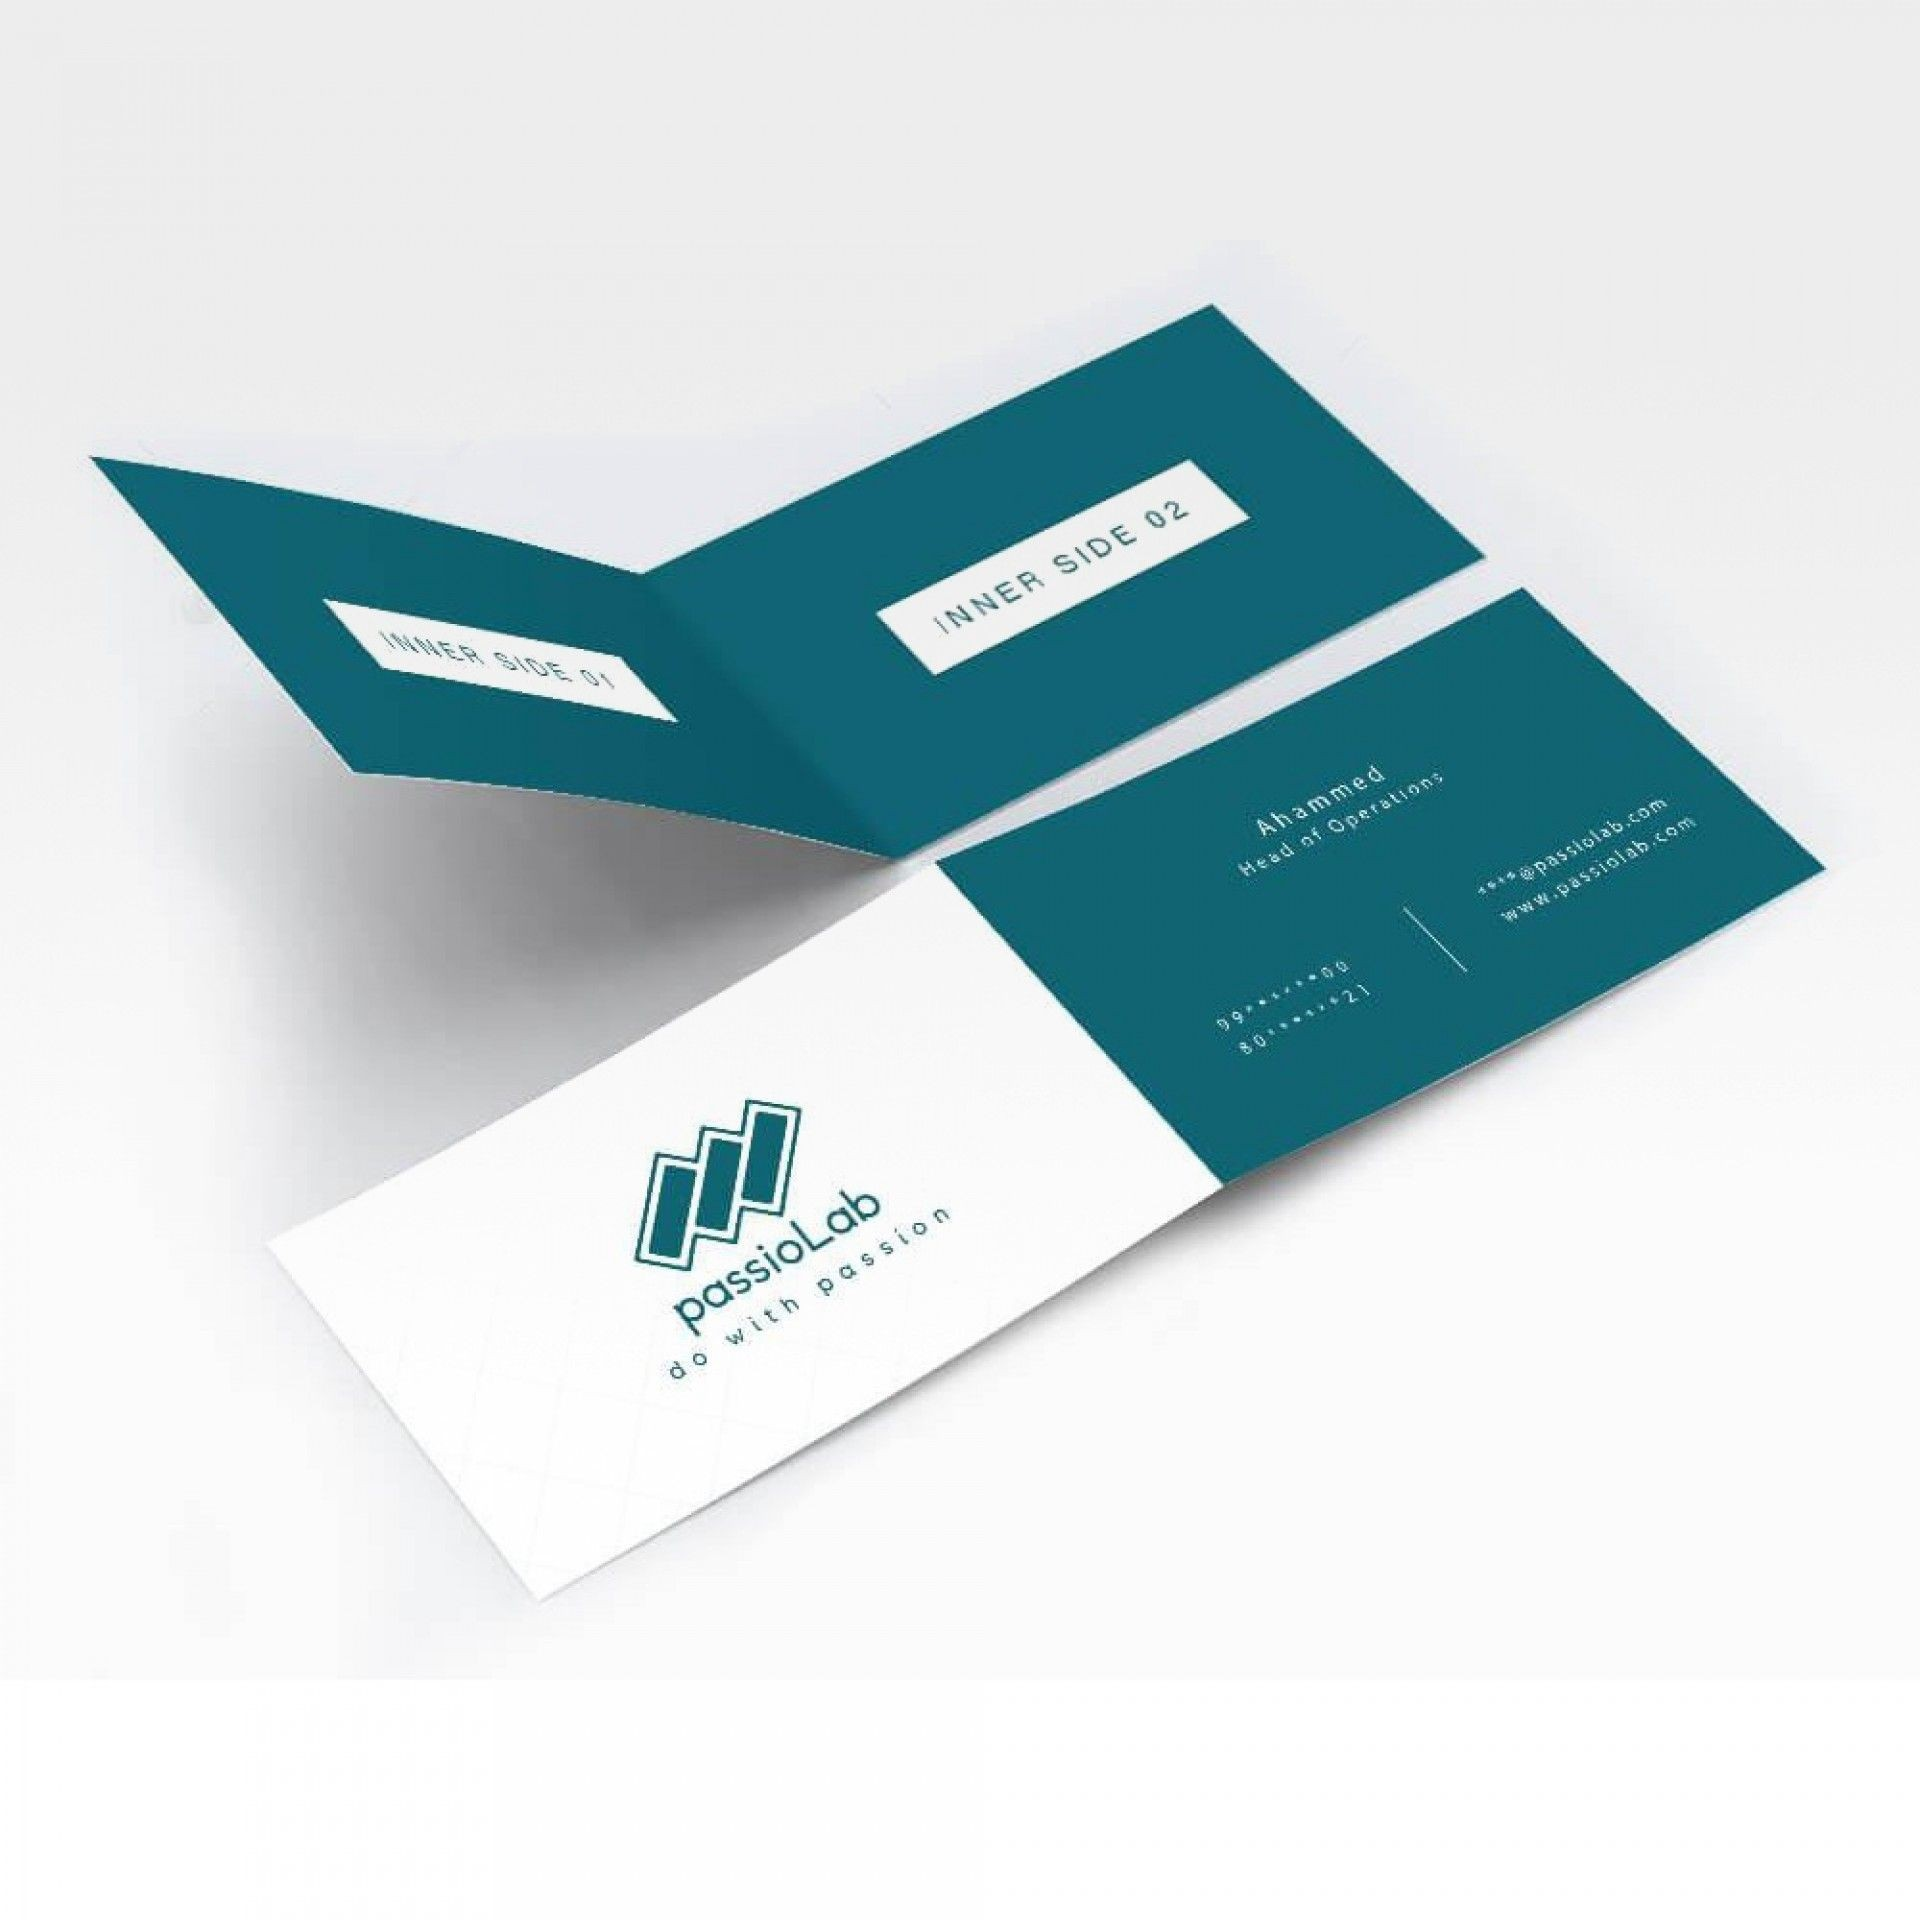 001 Staggering Folding Busines Card Template Inspiration  Folded Photoshop Ai Free1920